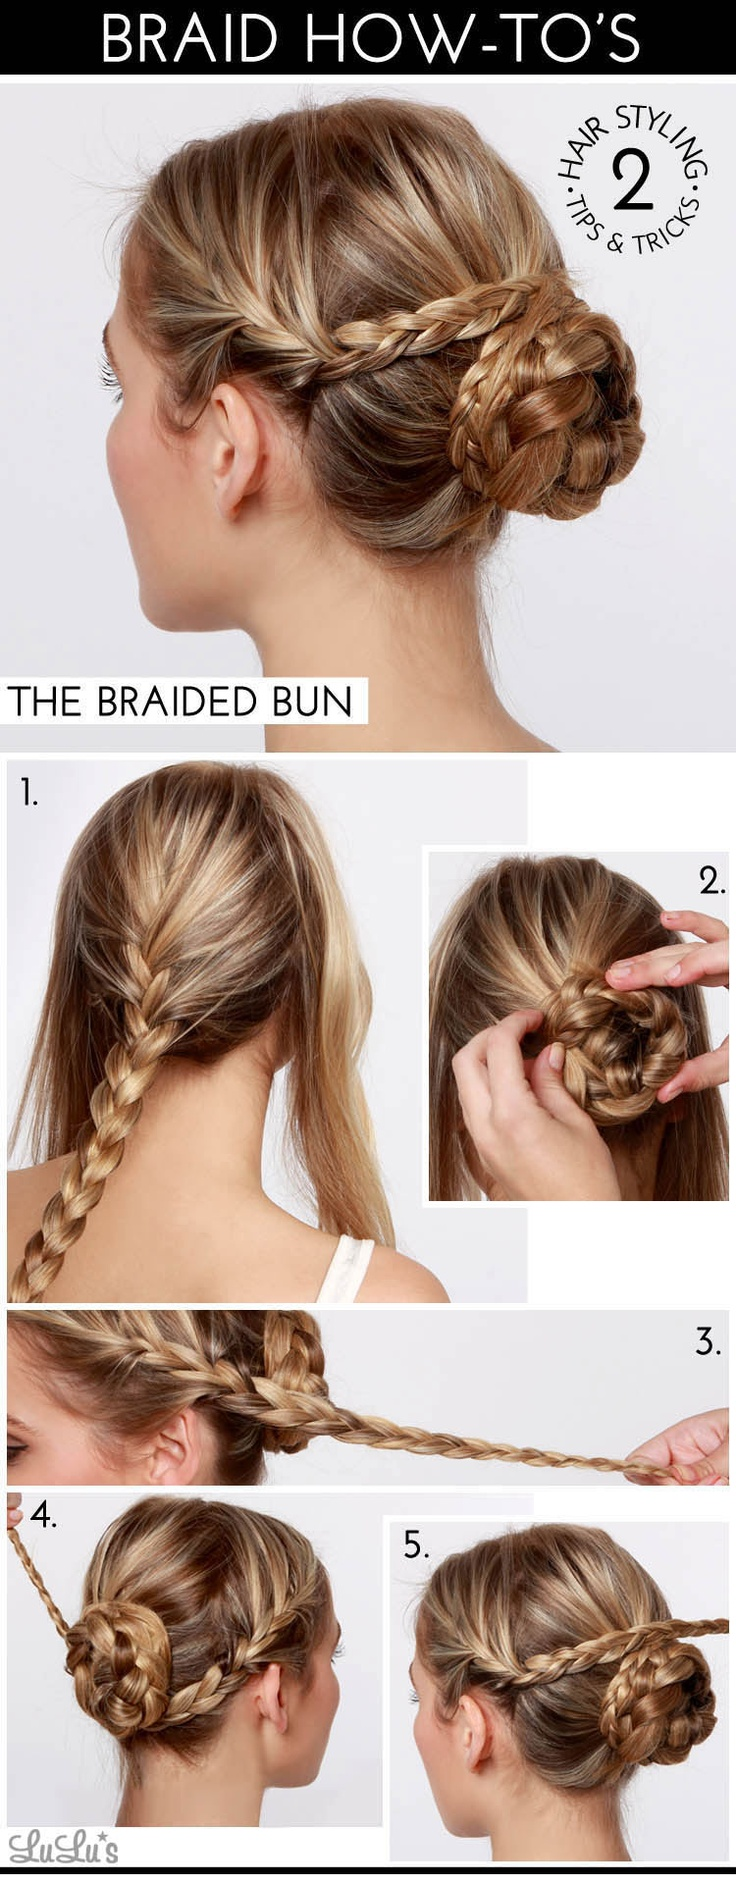 Miraculous 30 Cute And Easy Braid Tutorials That Are Perfect For Any Short Hairstyles For Black Women Fulllsitofus